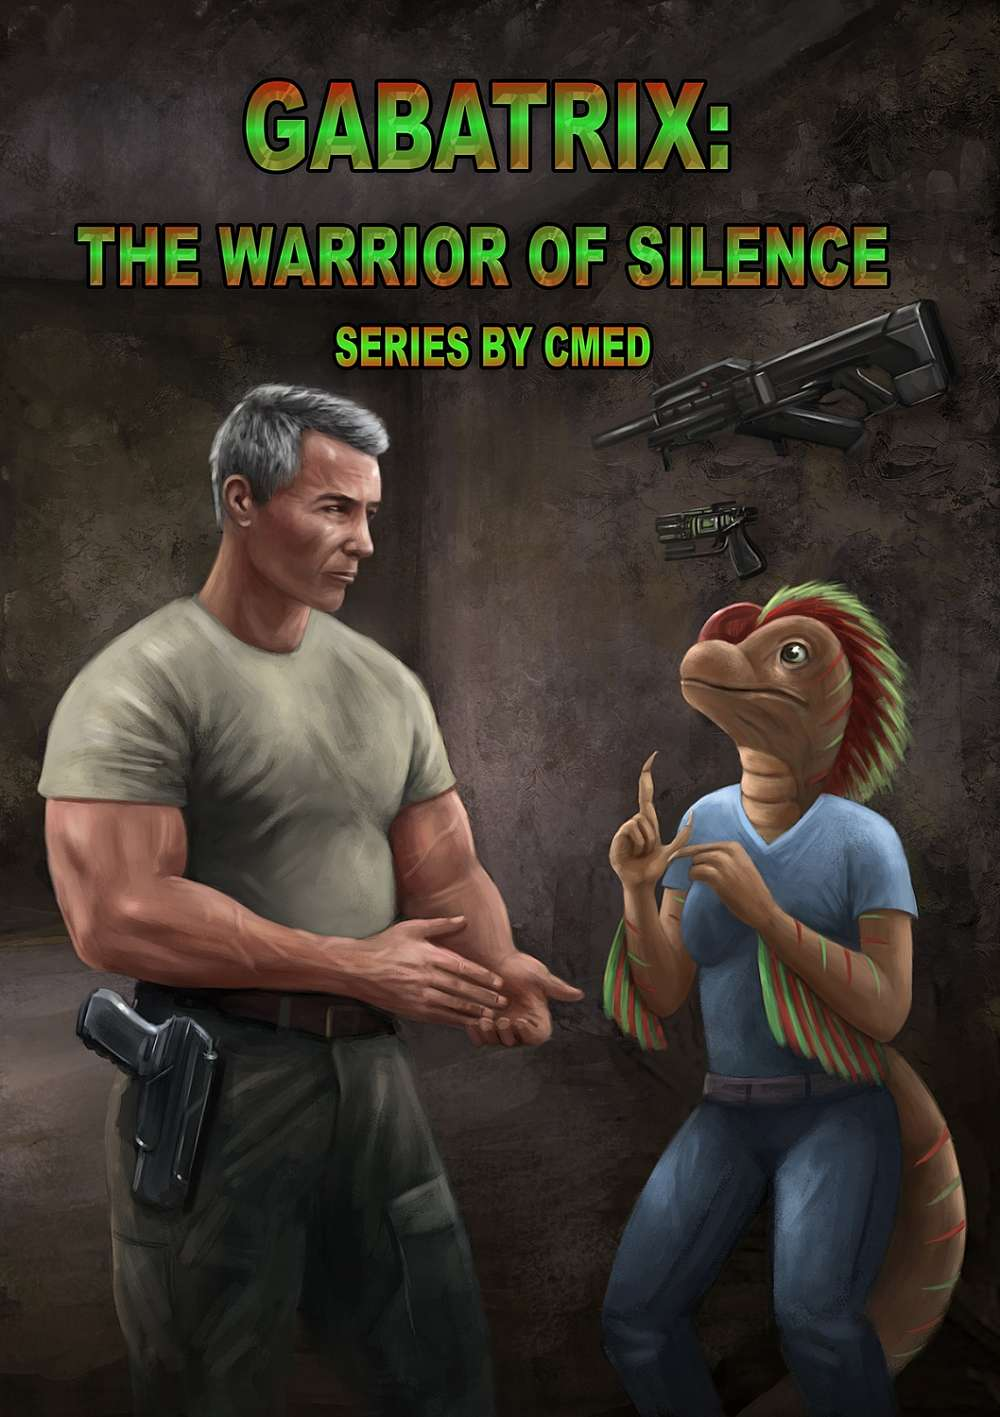 Cover - Human soldier looking at an alien female